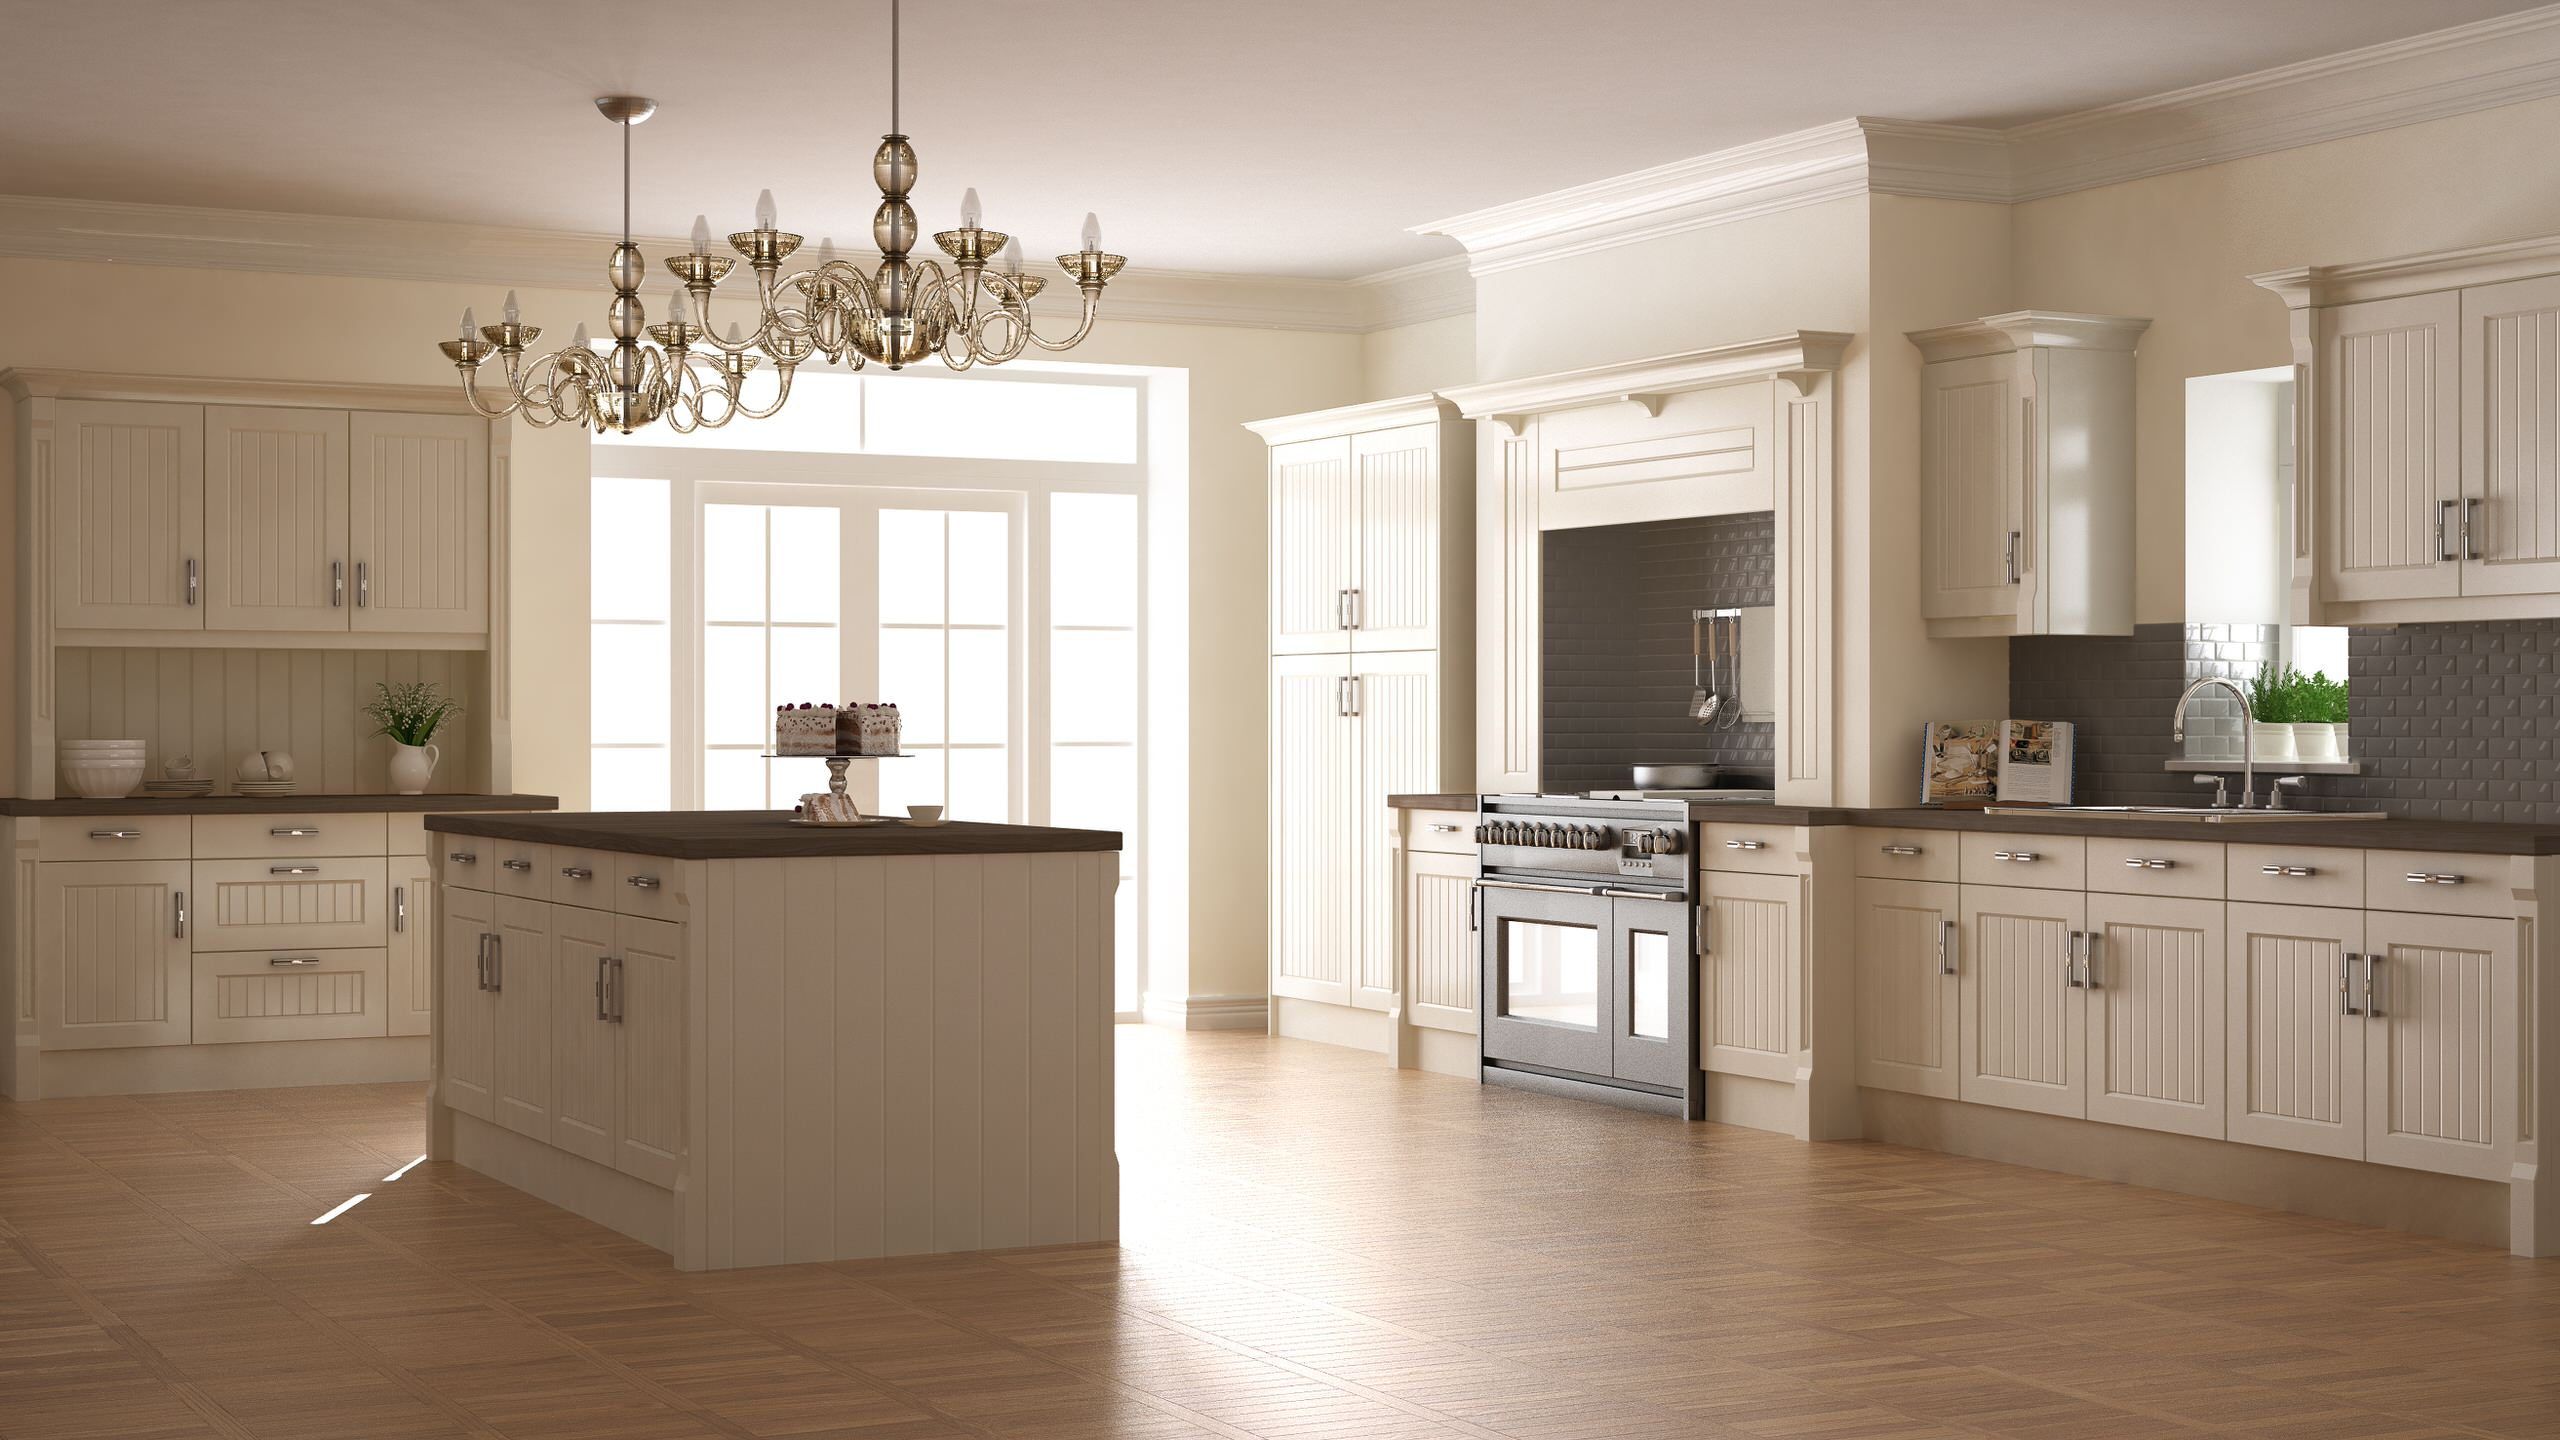 Large elegant country kitchen, with space to entertain